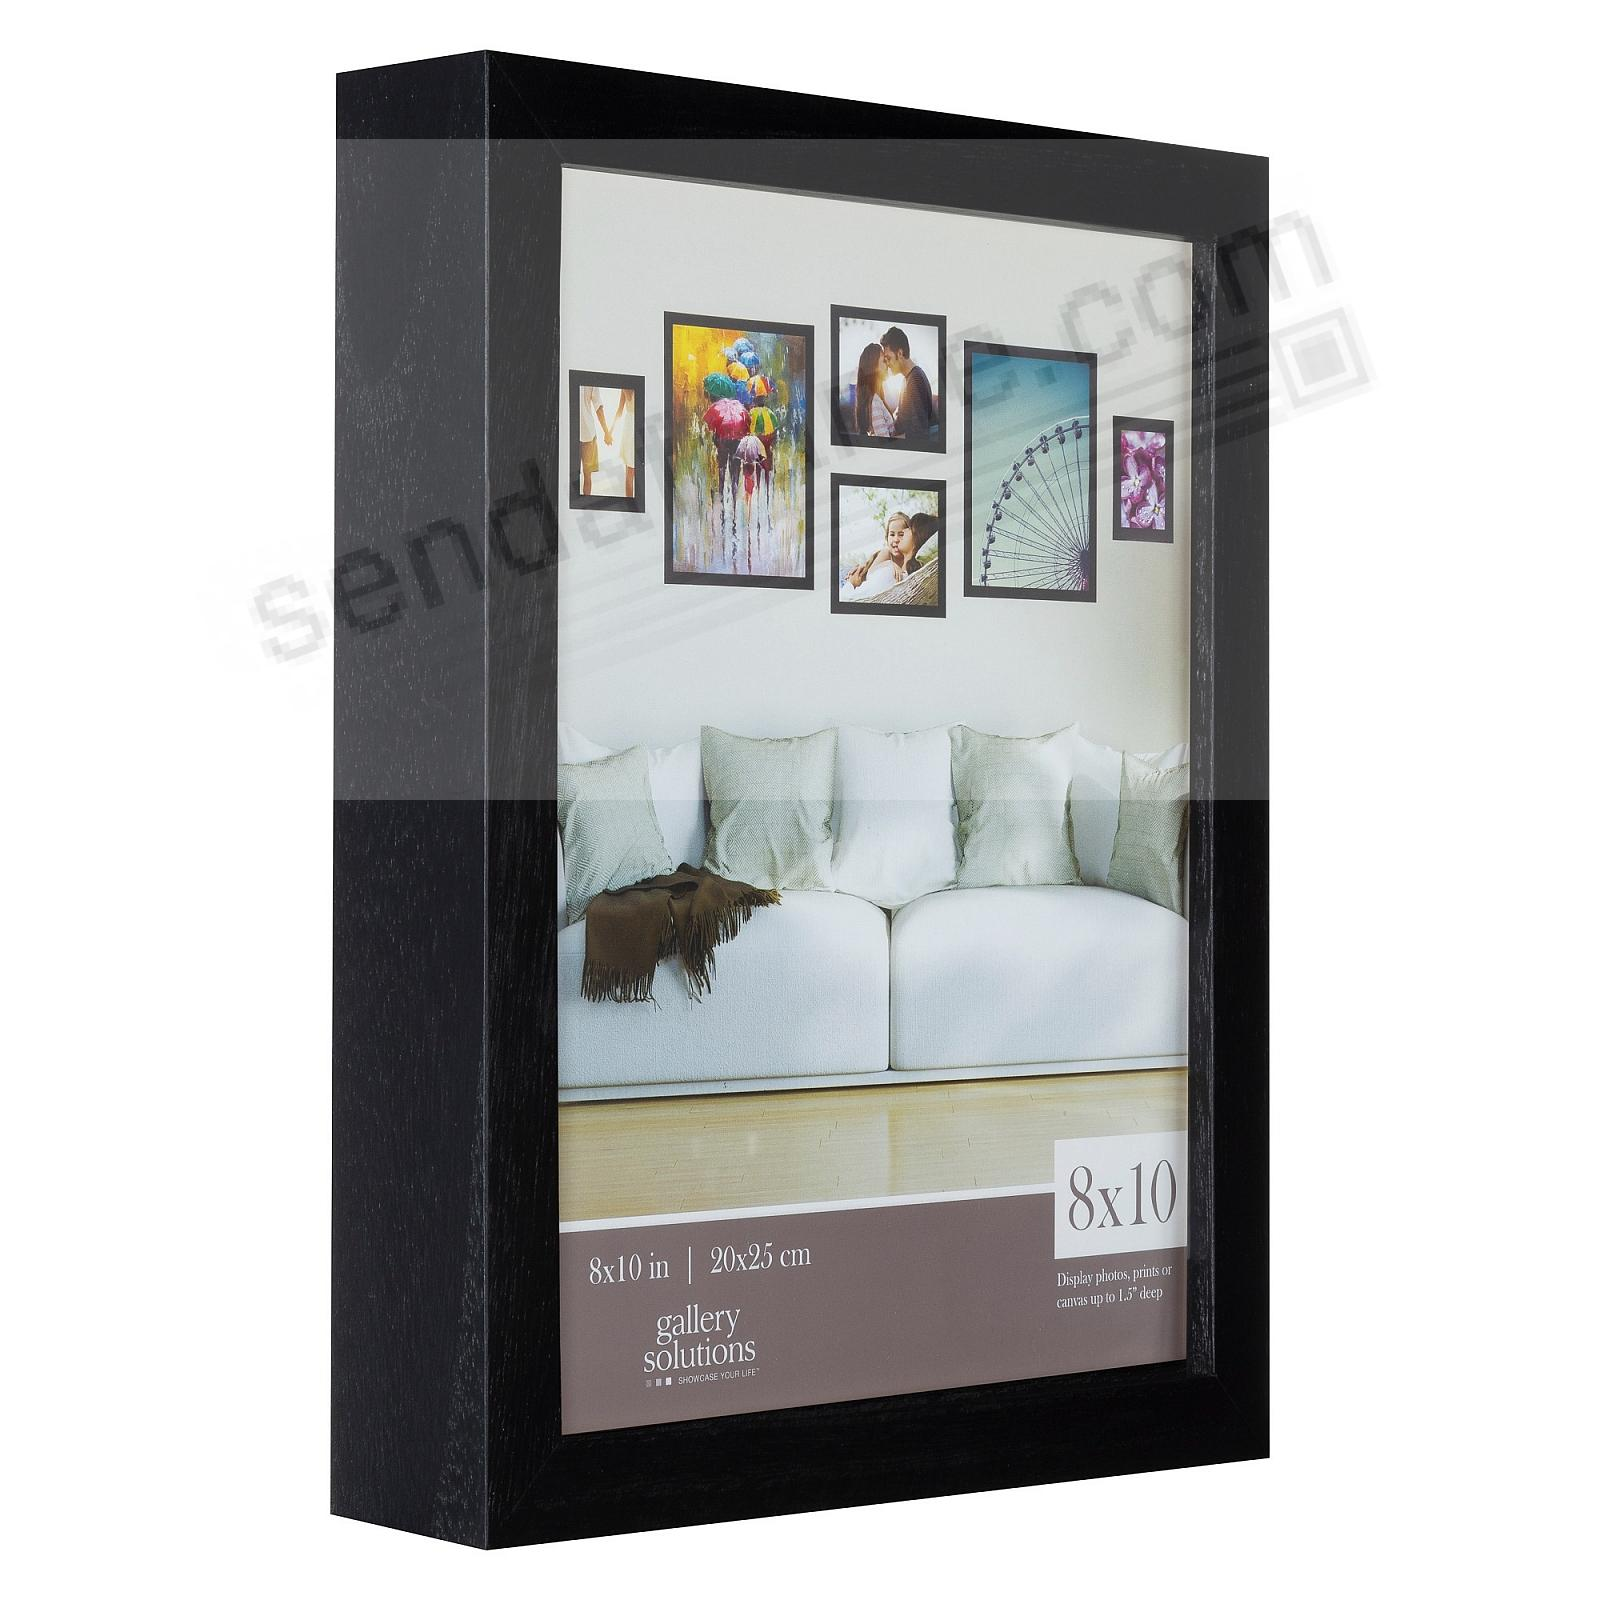 BLACK GALLERY 8x10 frame by Gallery Solutions®